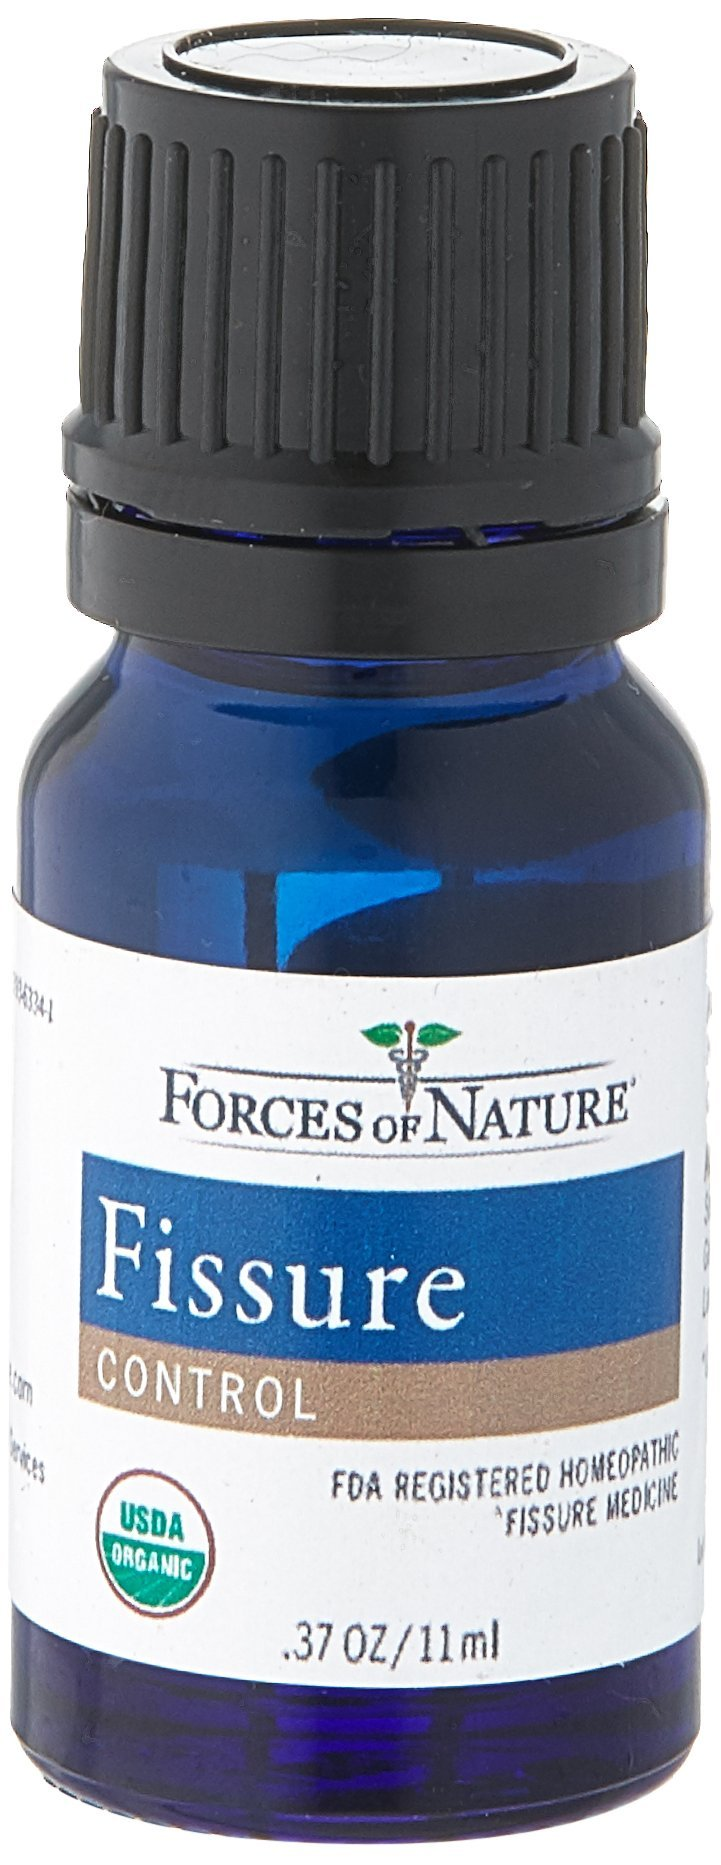 Forces of Nature Fissure Control, 11ml (2) by Forces Of Nature